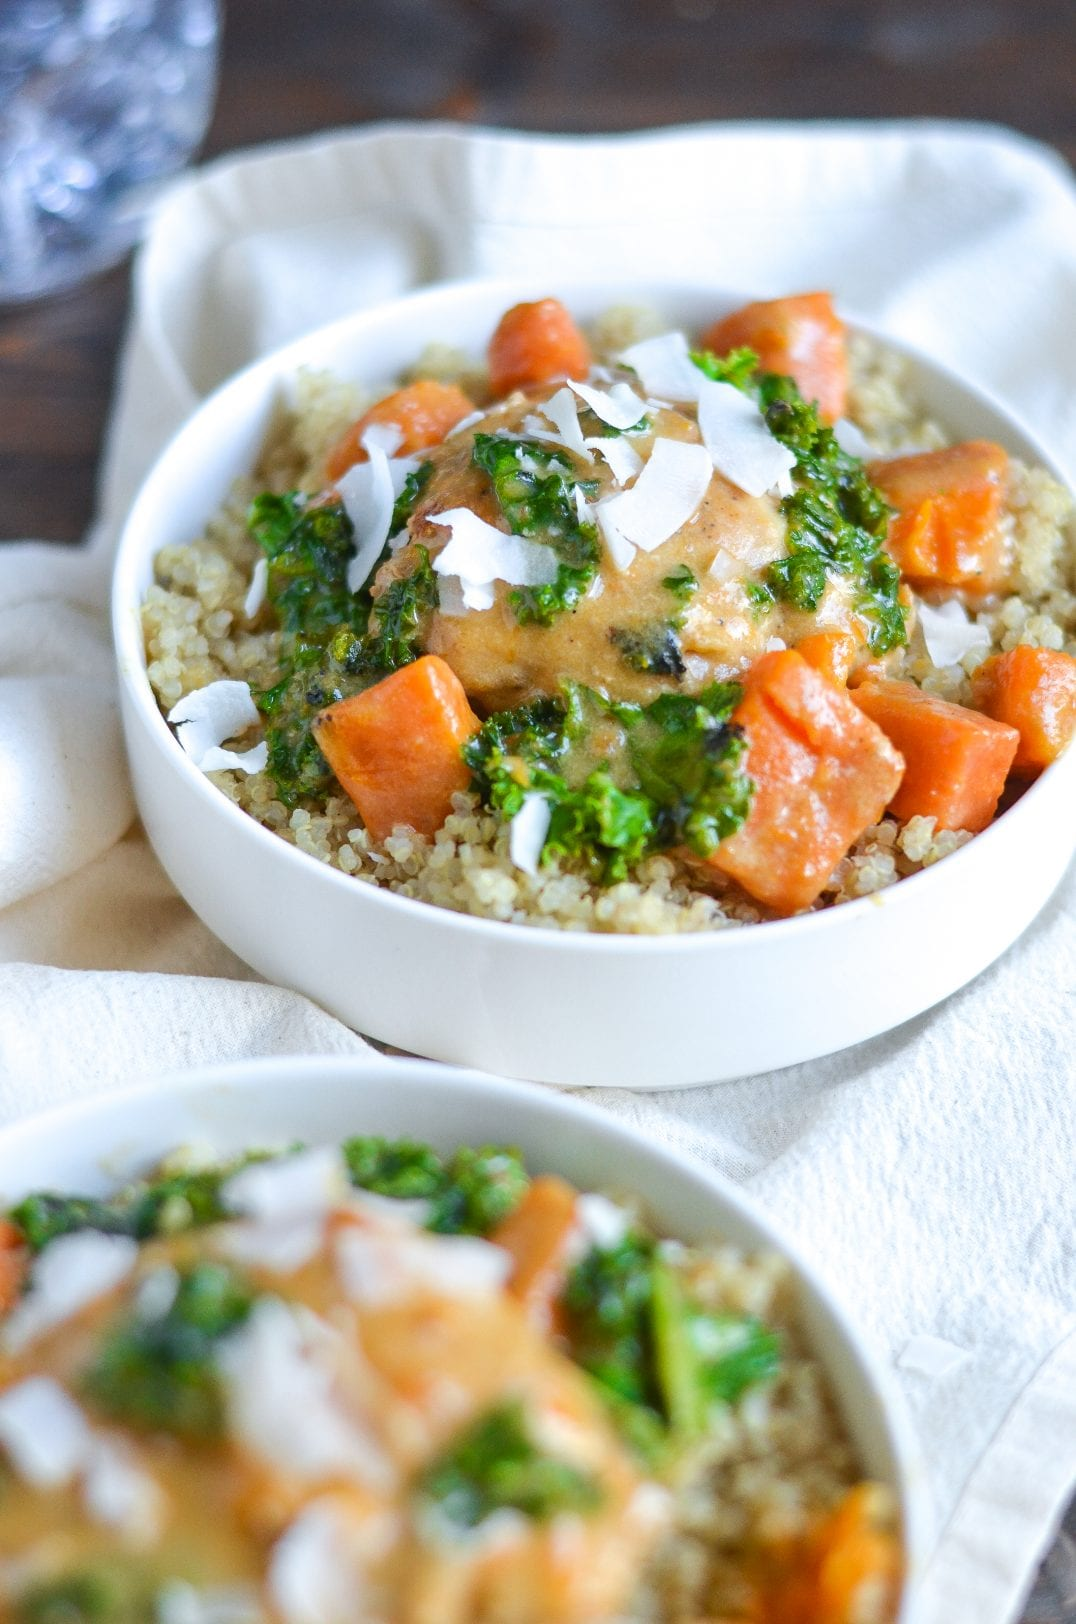 Coconut Braised Chicken Thighs with Kale and Sweet Potatoes